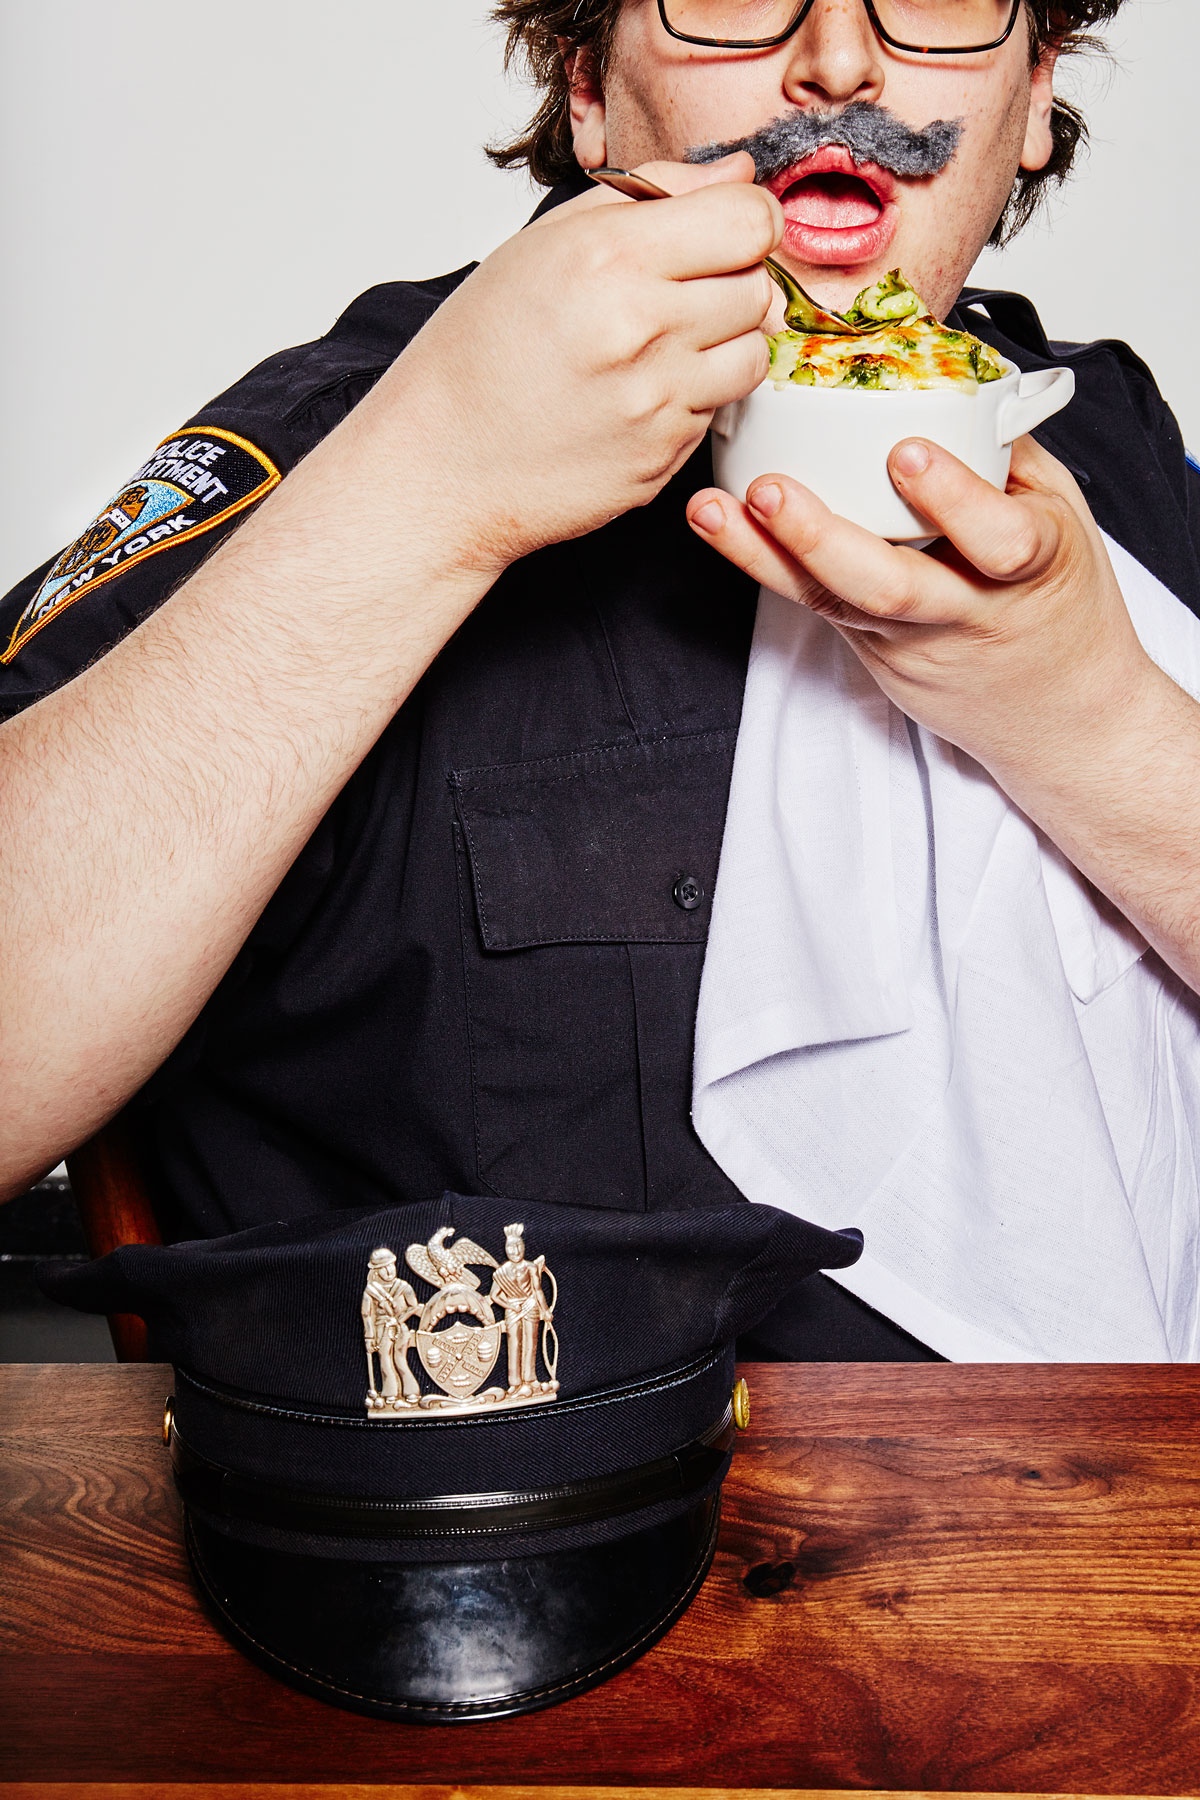 420-stoned-cop-eating-mac-and-cheese